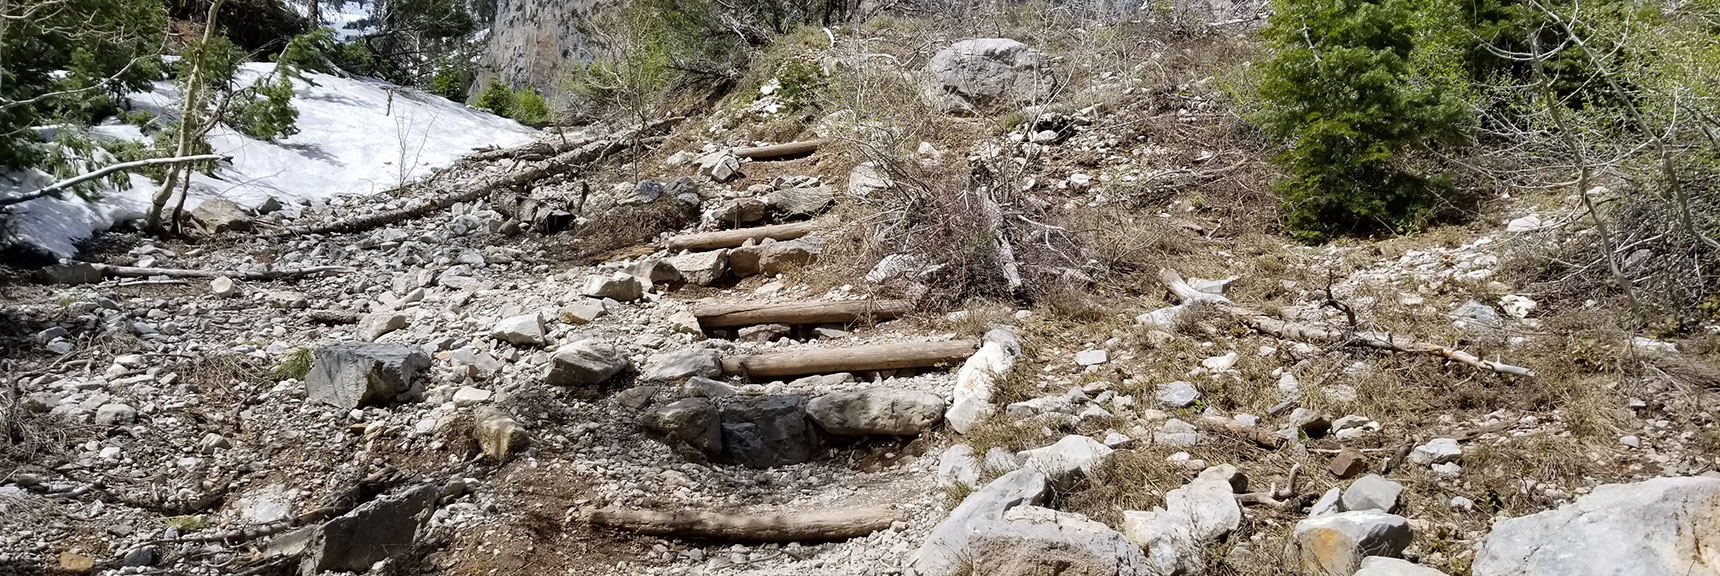 Stairway on South Climb Trail to Griffith Peak in Mt Charleston Wilderness